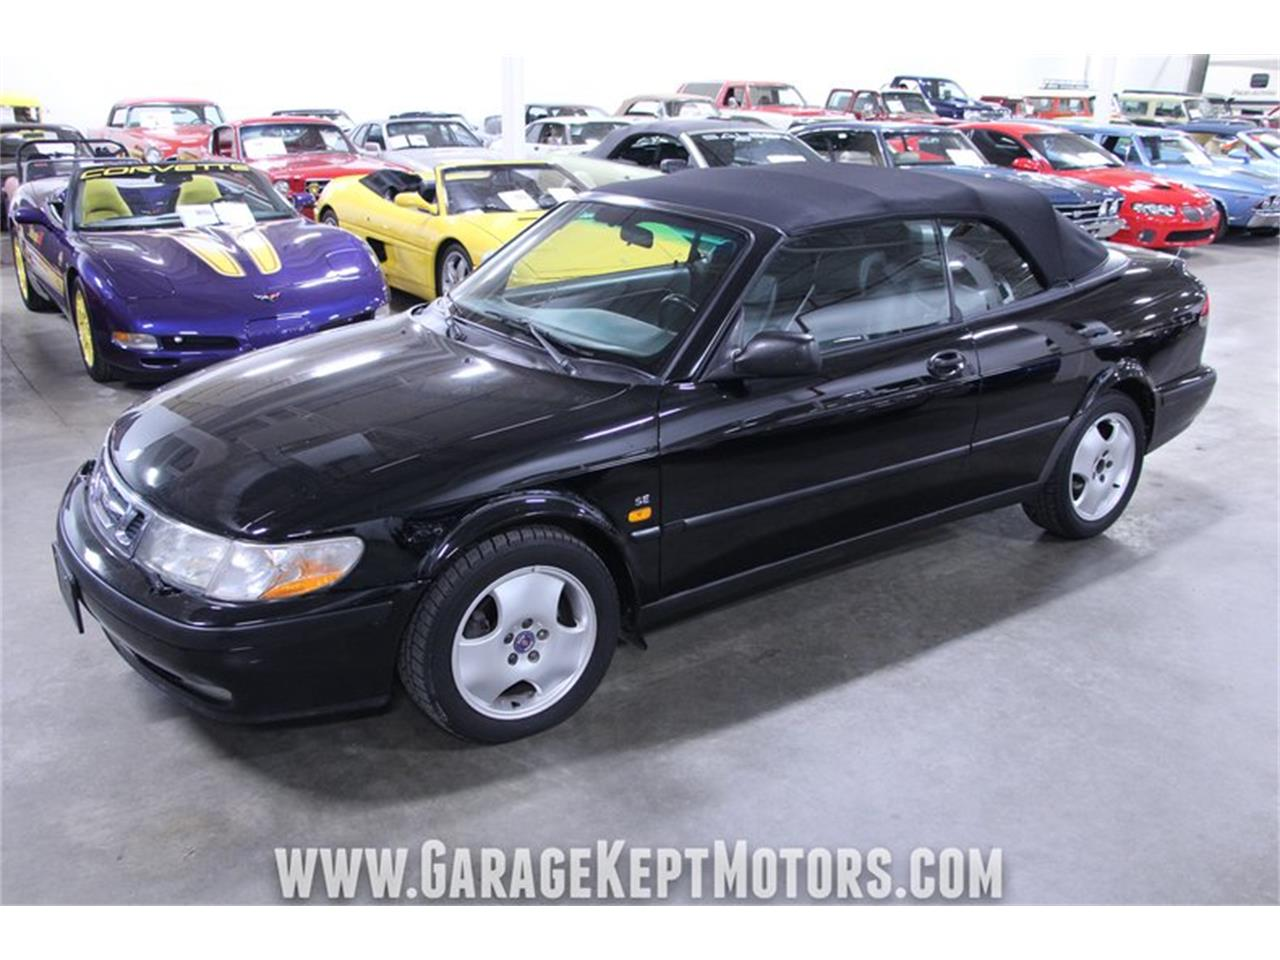 1999 Saab 9-3 for sale in Grand Rapids, MI – photo 62